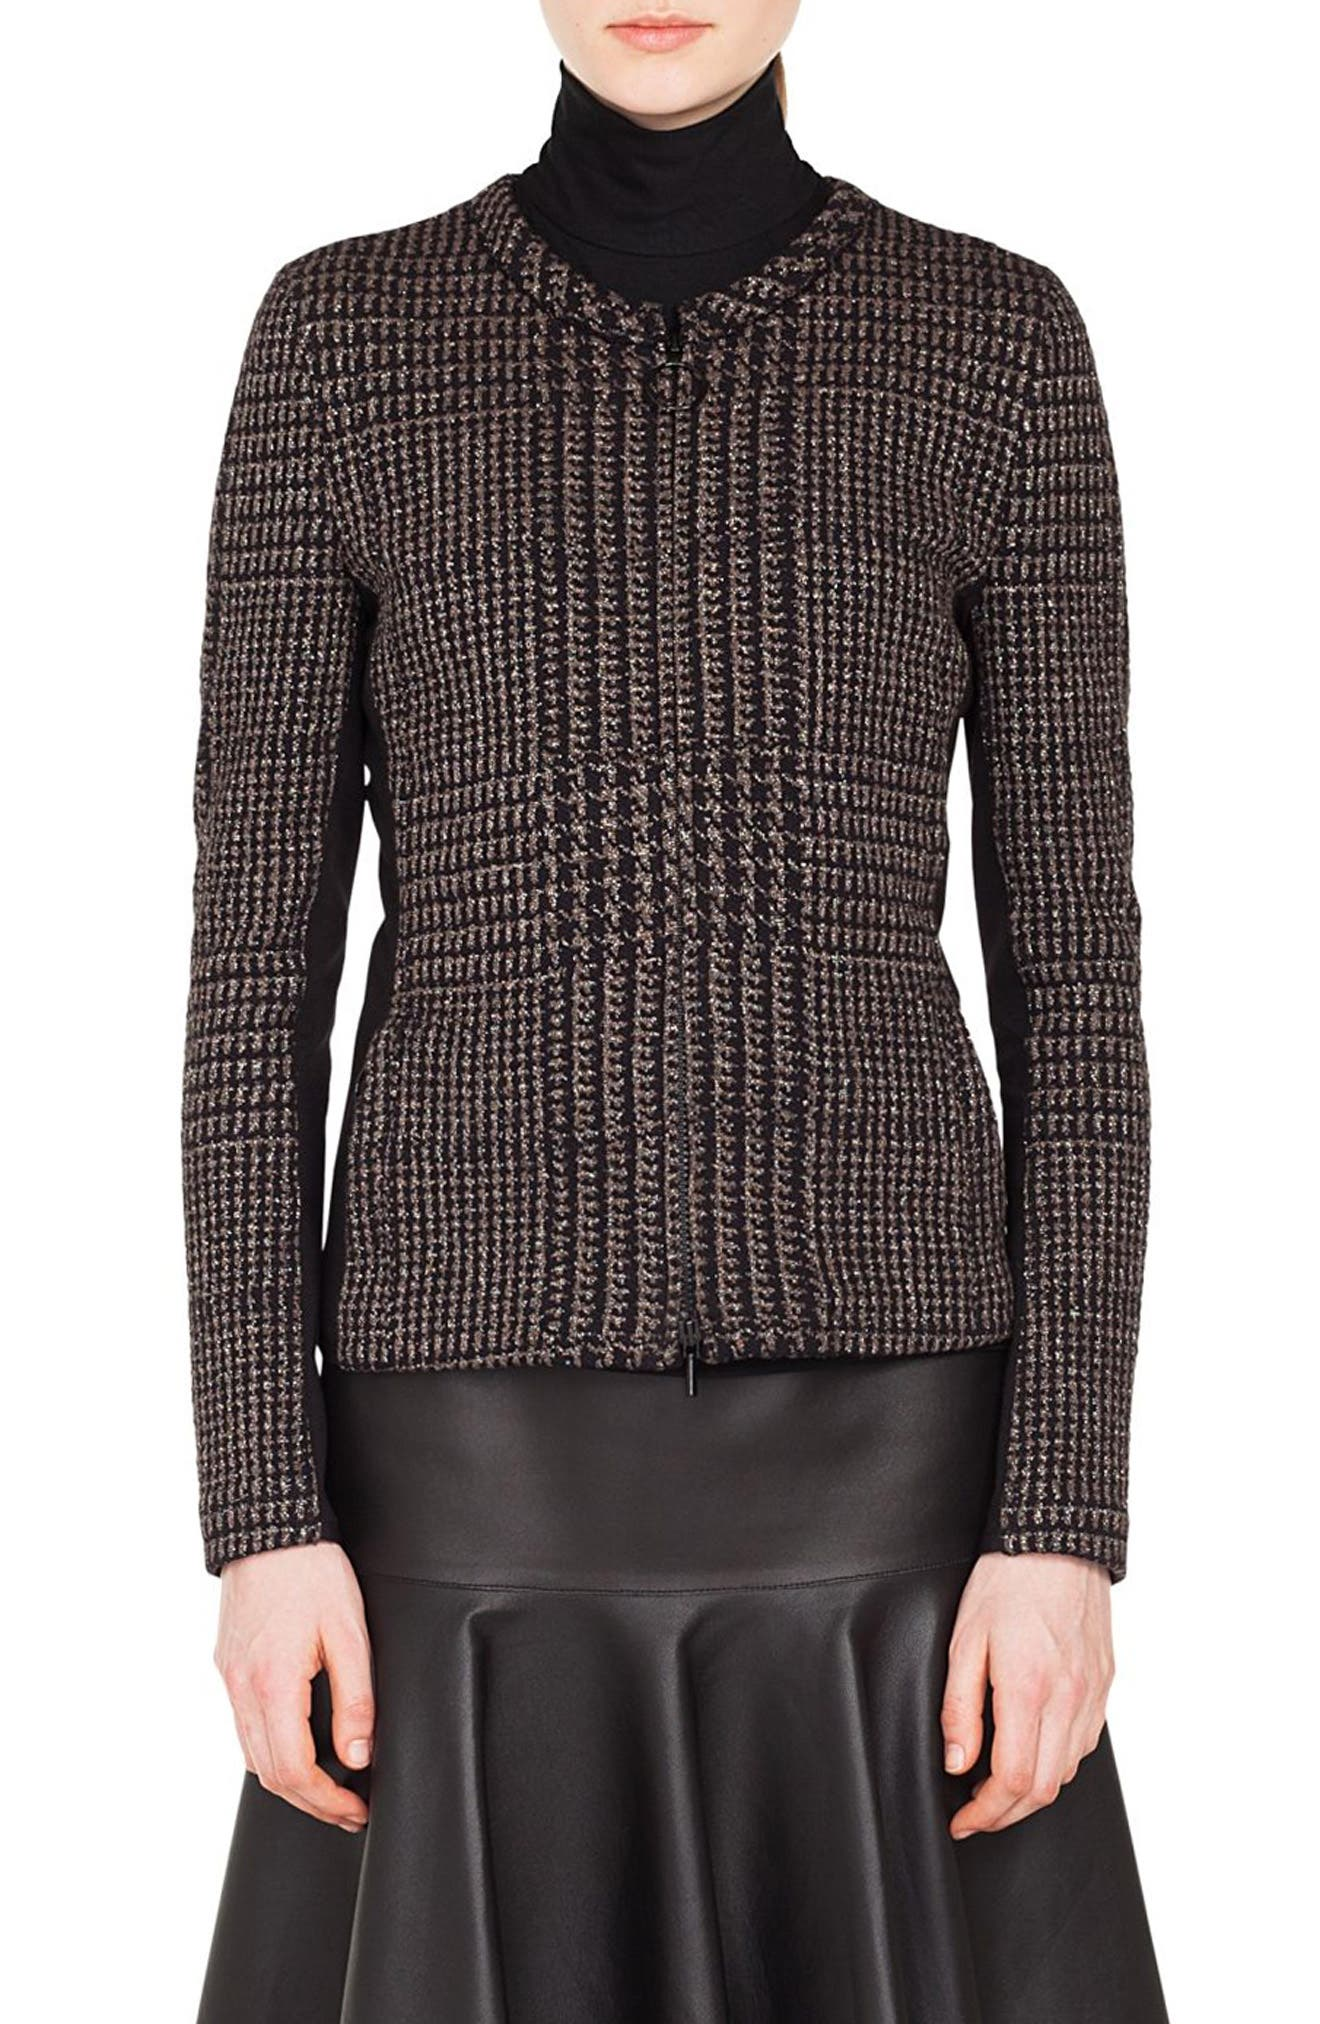 Metallic Houndstooth Jacquard Jacket,                             Main thumbnail 1, color,                             BLACK/ TAUPE